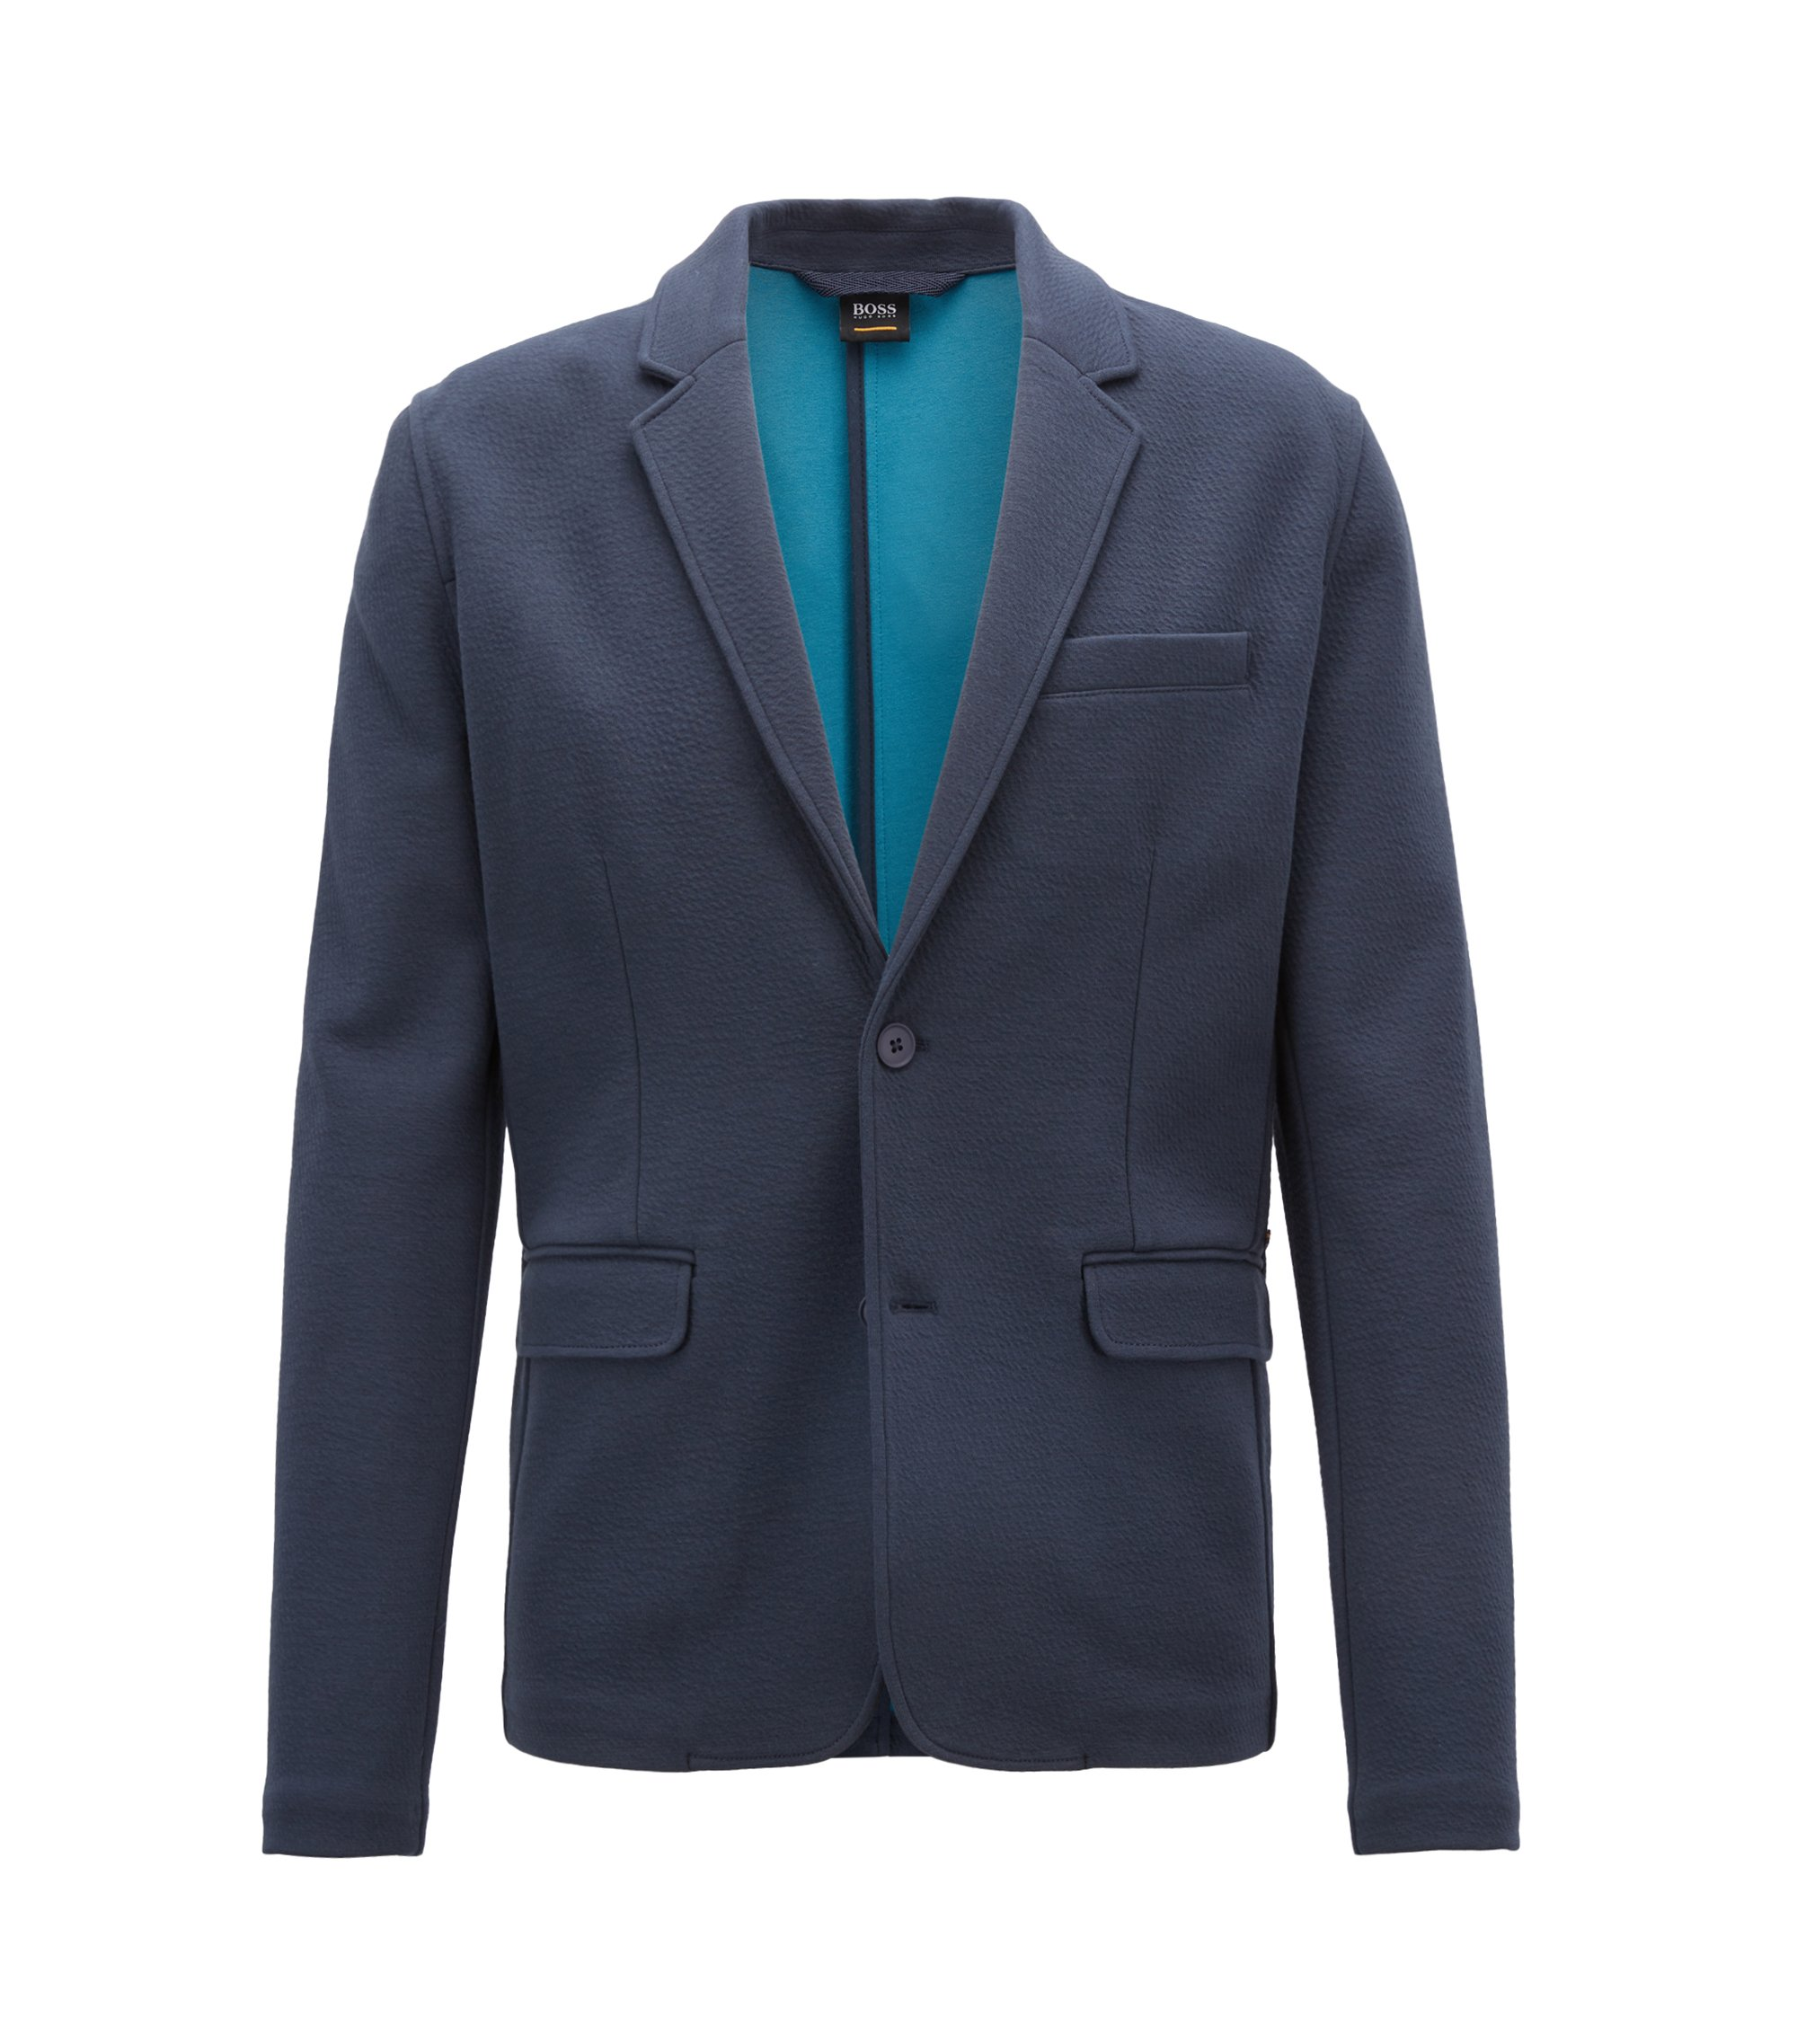 Blazer in stretch jersey with pop-colour detail, Dark Blue